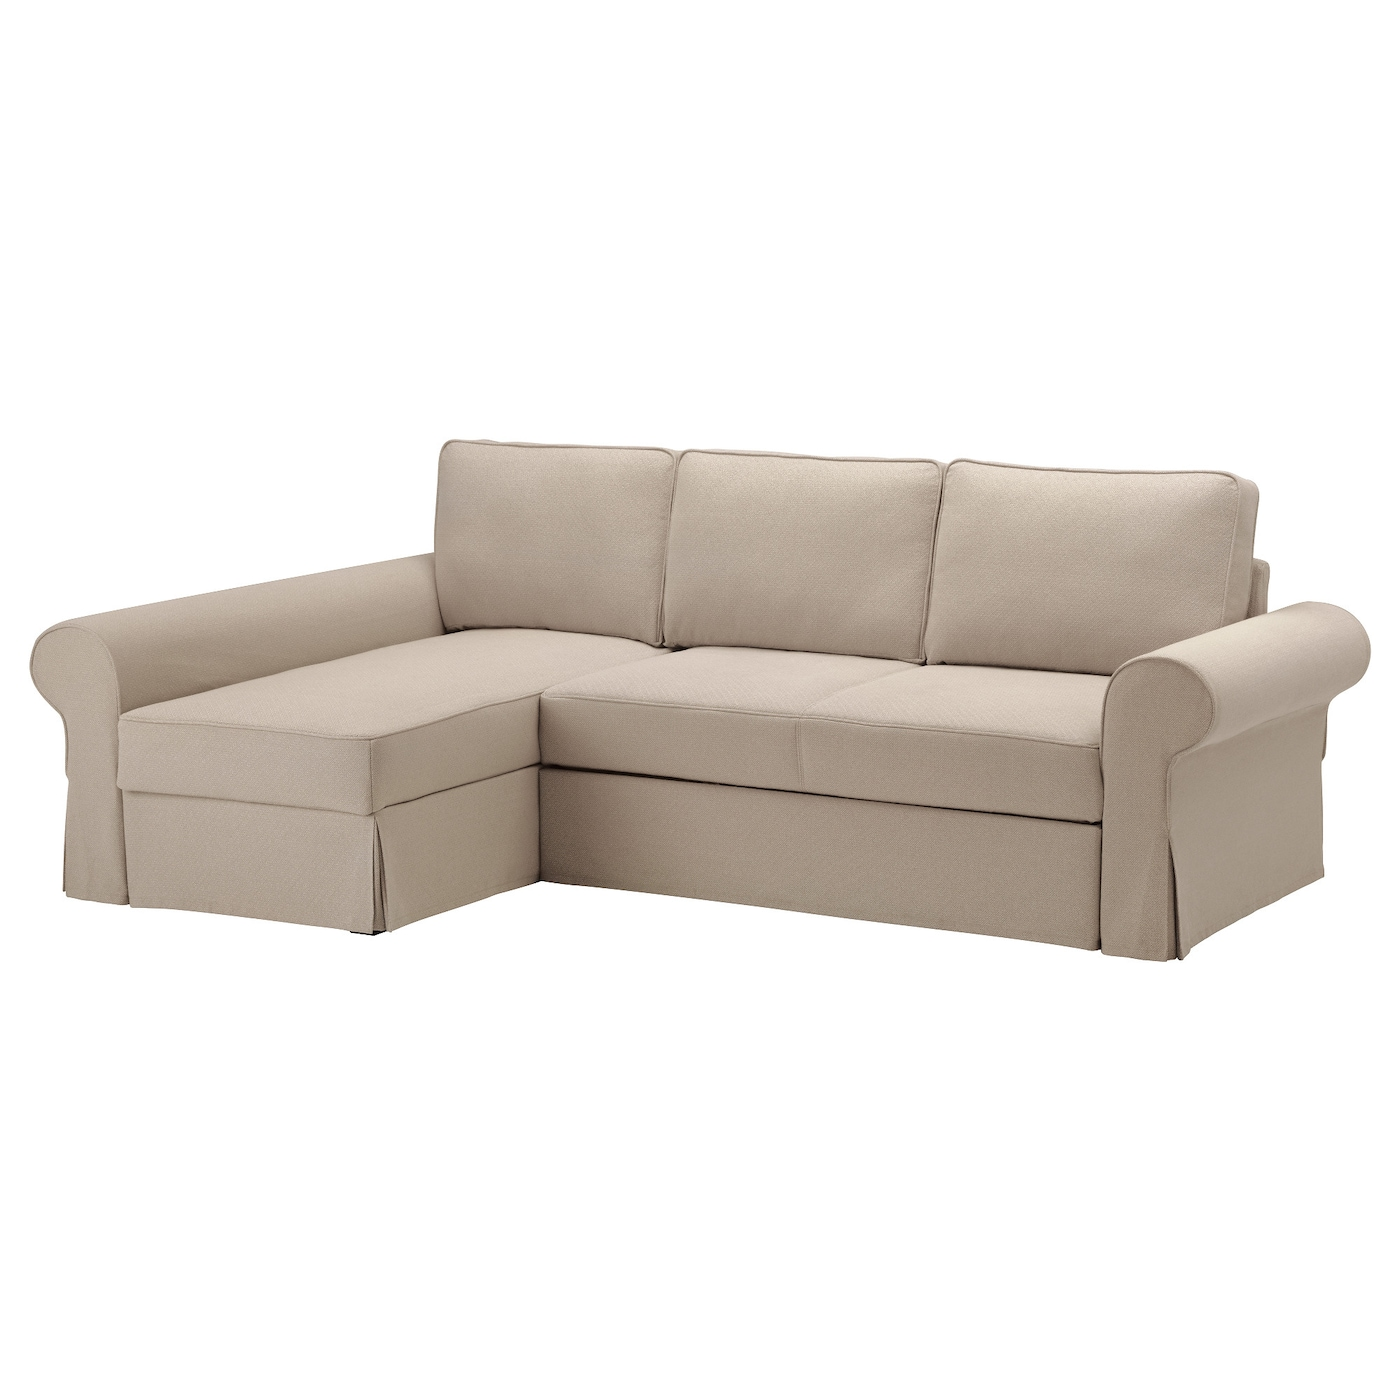 Backabro sofa bed with chaise longue hylte beige ikea for Chaise sofa bed